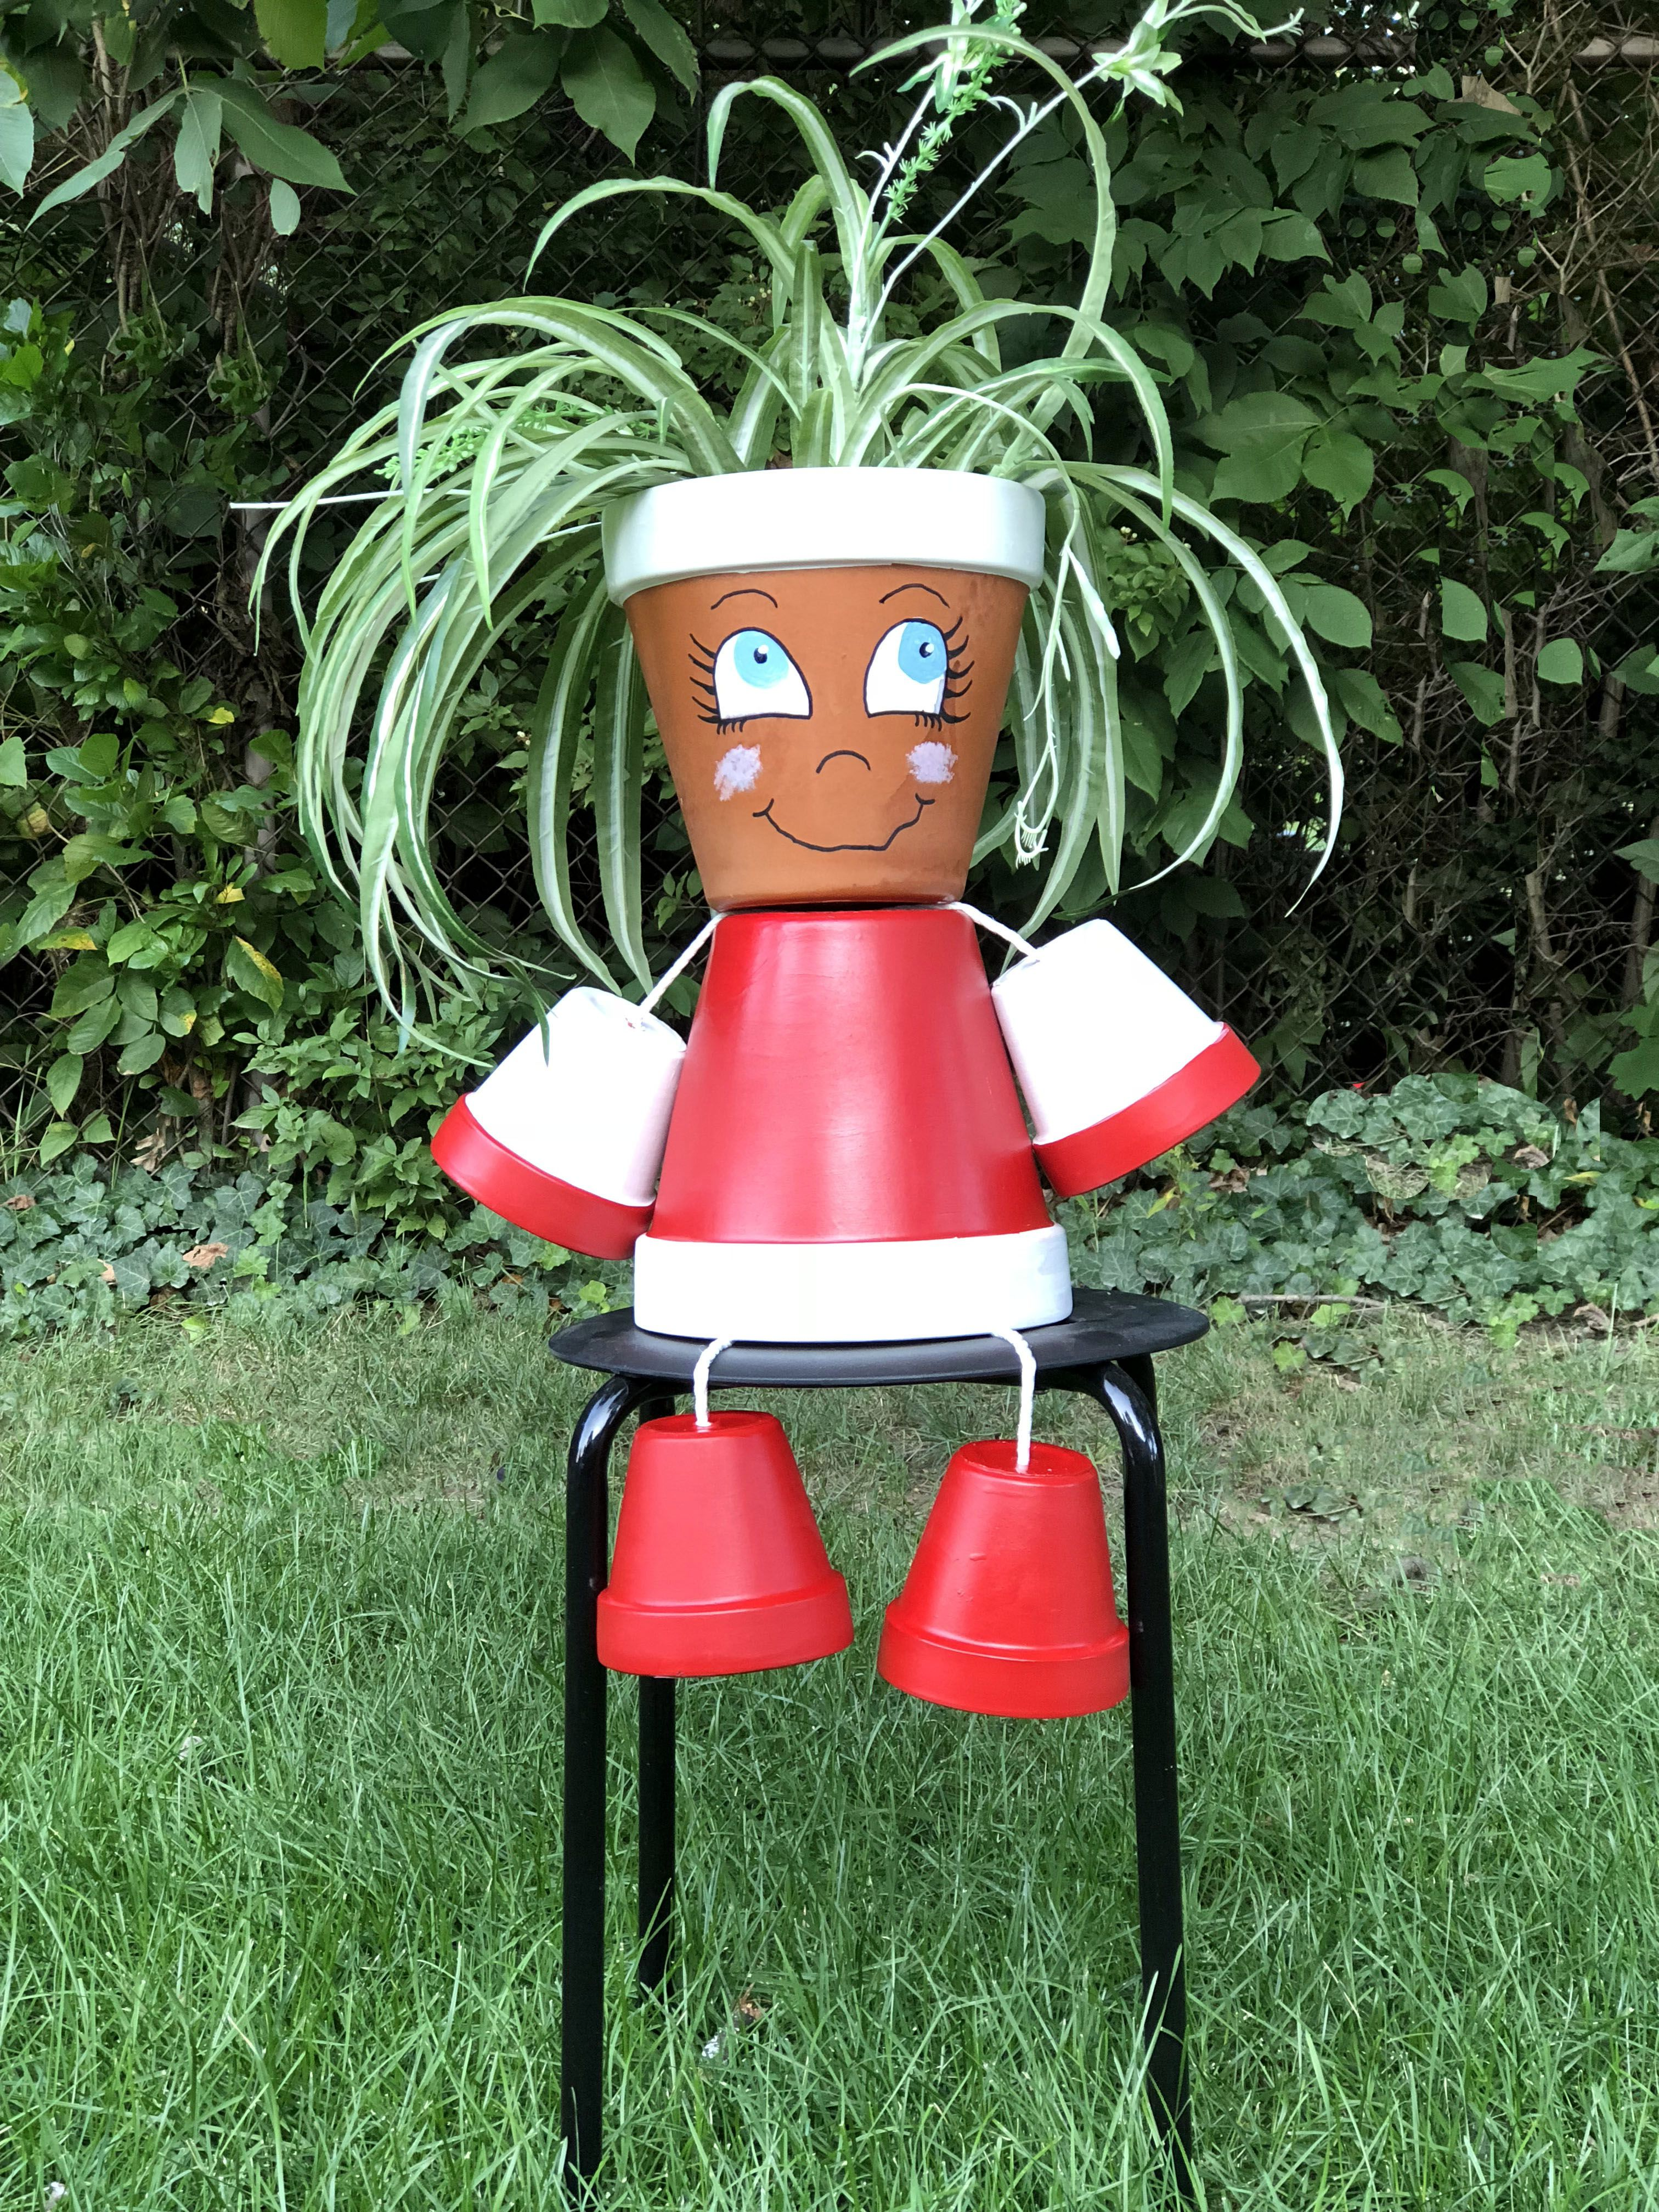 How to Make a Flower Pot Person for Your Garden